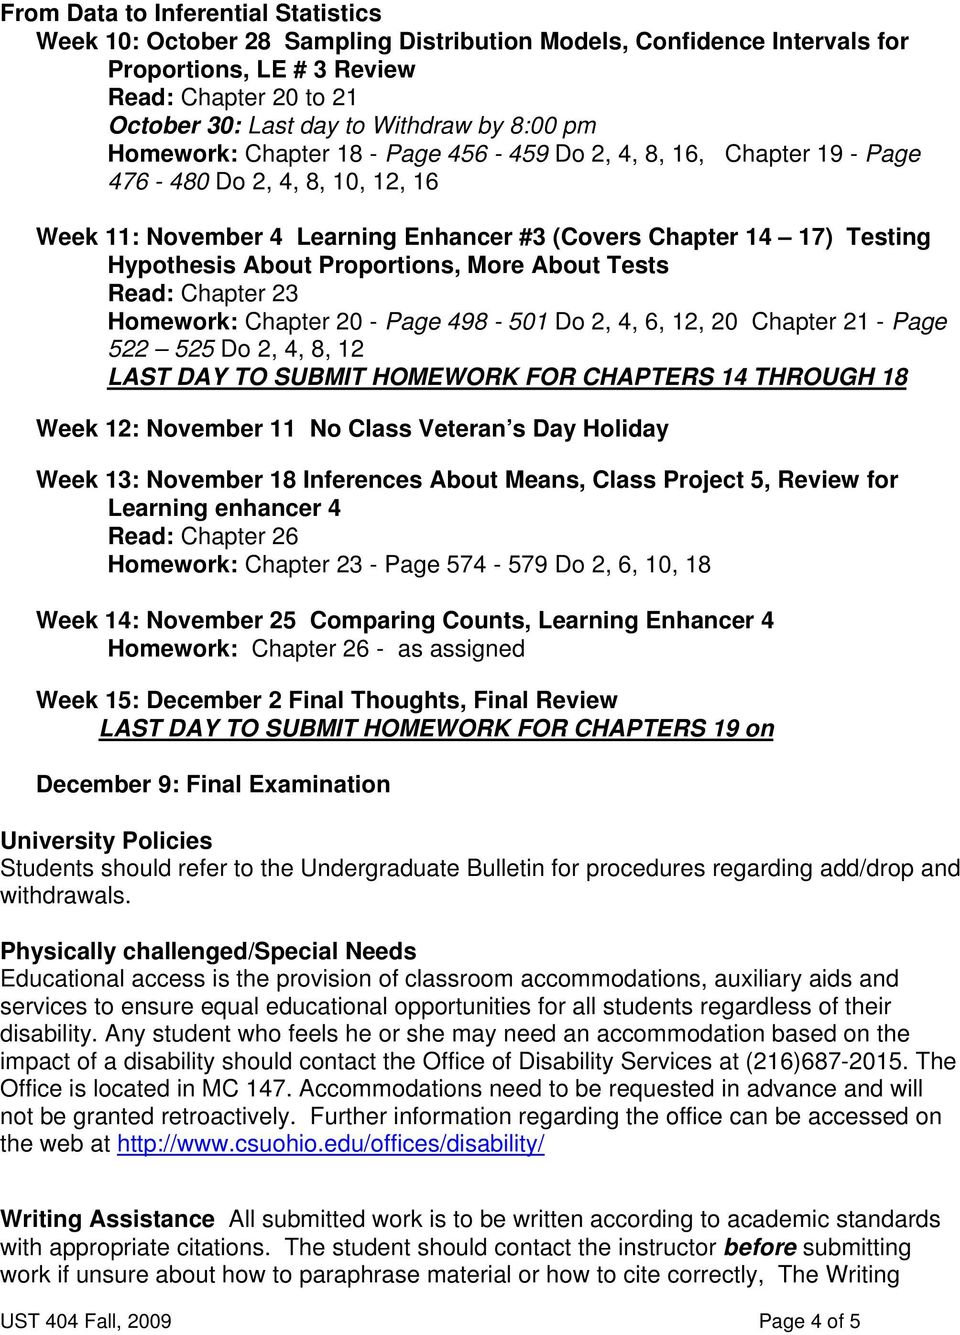 Proportions, More About Tests Read: Chapter 23 Homework: Chapter 20 - Page 498-501 Do 2, 4, 6, 12, 20 Chapter 21 - Page 522 525 Do 2, 4, 8, 12 LAST DAY TO SUBMIT HOMEWORK FOR CHAPTERS 14 THROUGH 18